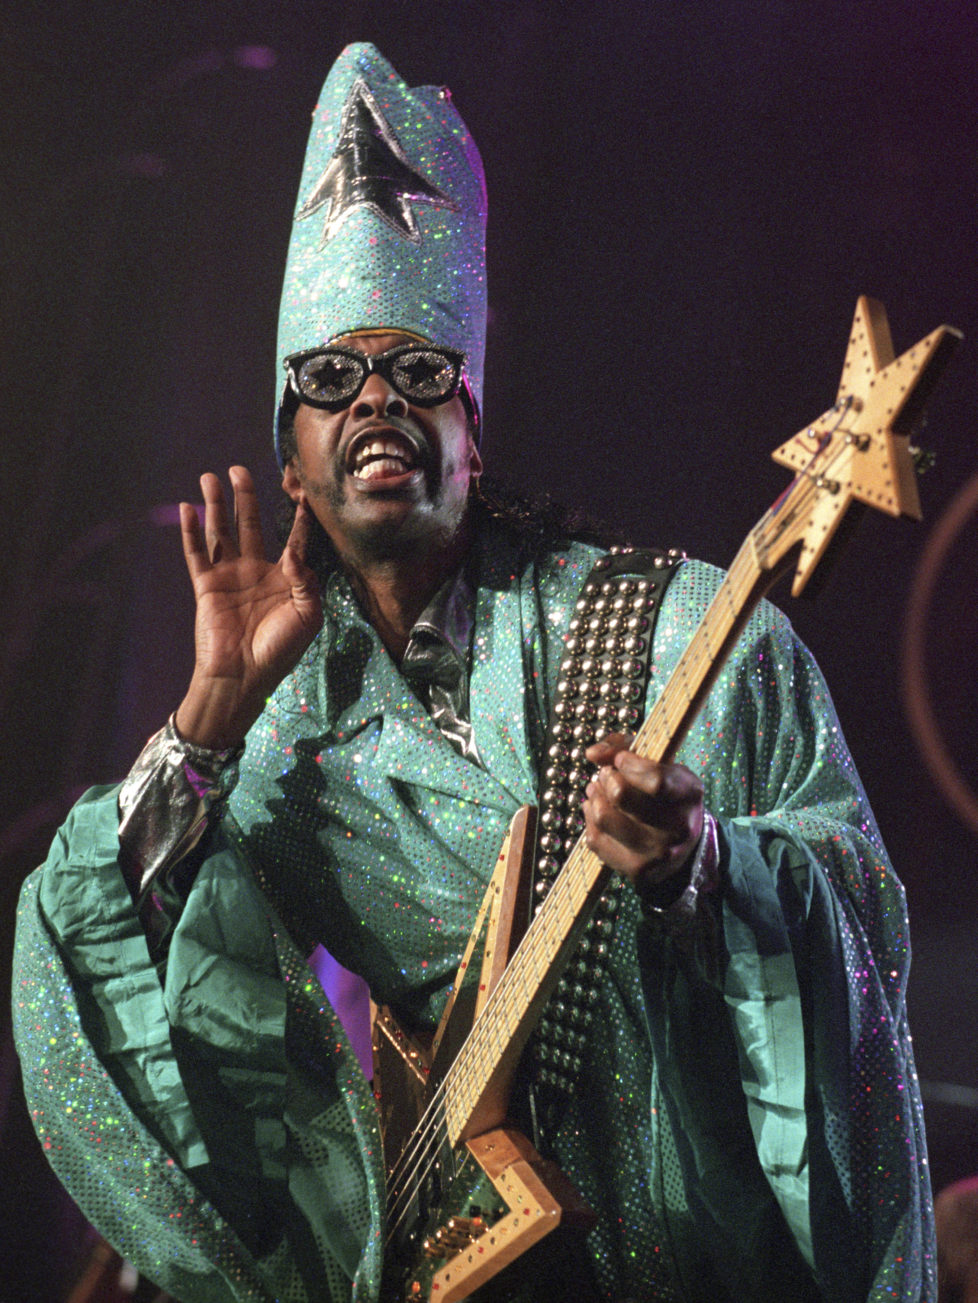 Bass guitar player Bootsy Collins performs with his Band during the Hot & Funky Night at the 32th Montreux Jazz Festival, late Friday, July 17, 1998. (KEYSTONE/Patrick Aviolat)